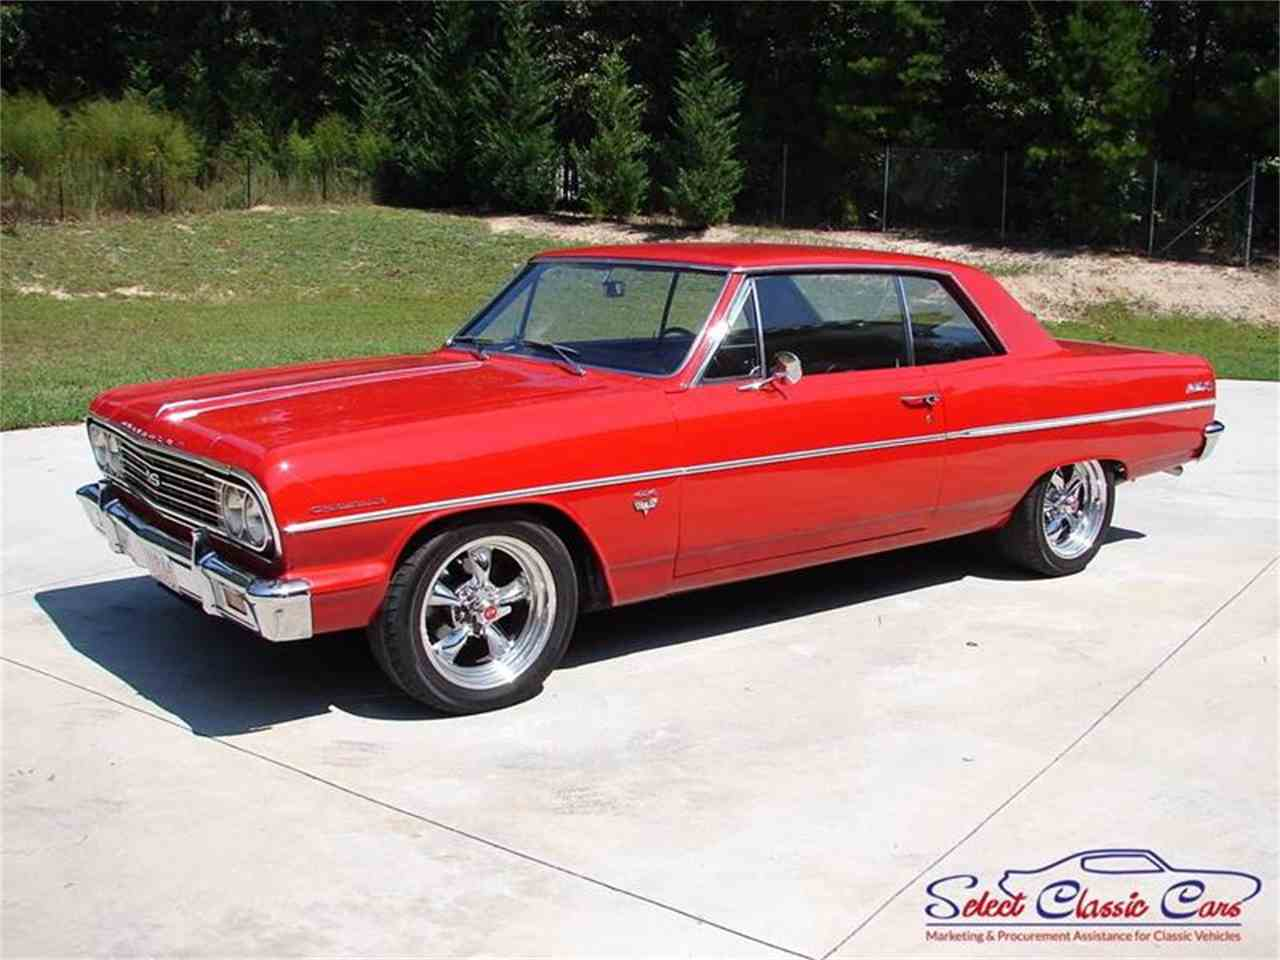 Large Picture of 1964 Chevrolet Chevelle located in Georgia - $34,500.00 Offered by Select Classic Cars - MG3H